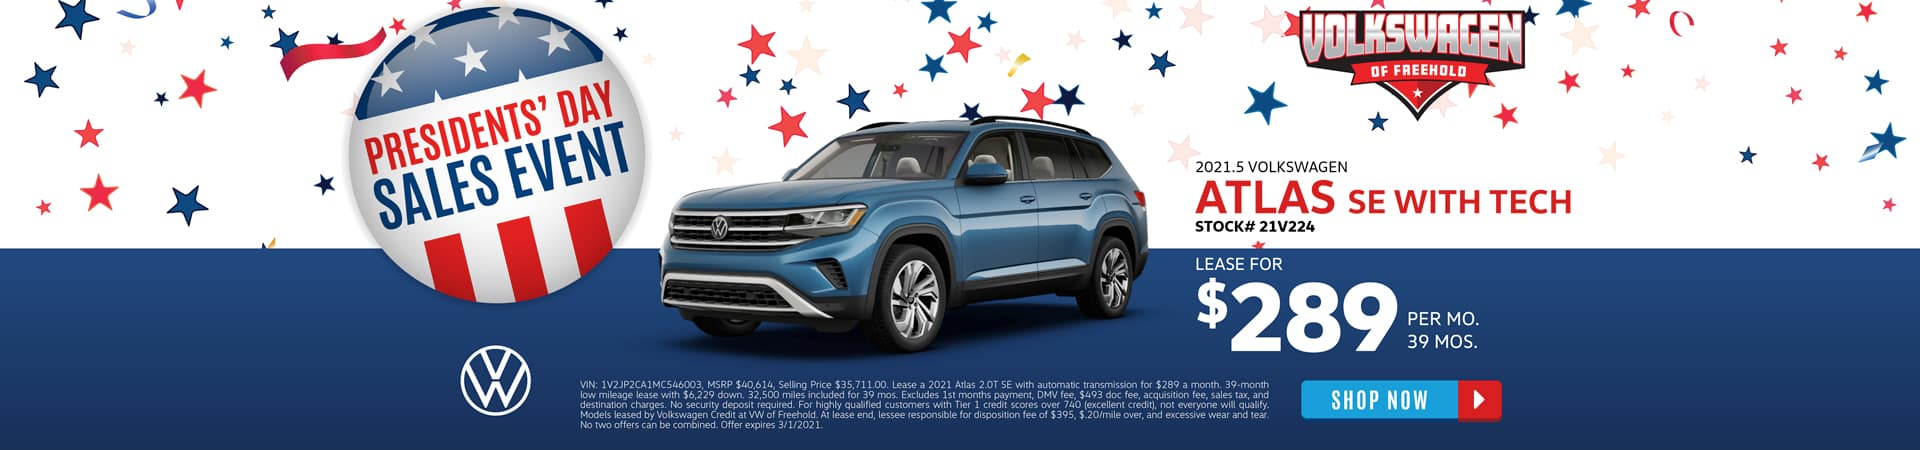 2021.01.29-VW-of-Freehold-Feb-Web-Banners-1-S50690cr_04